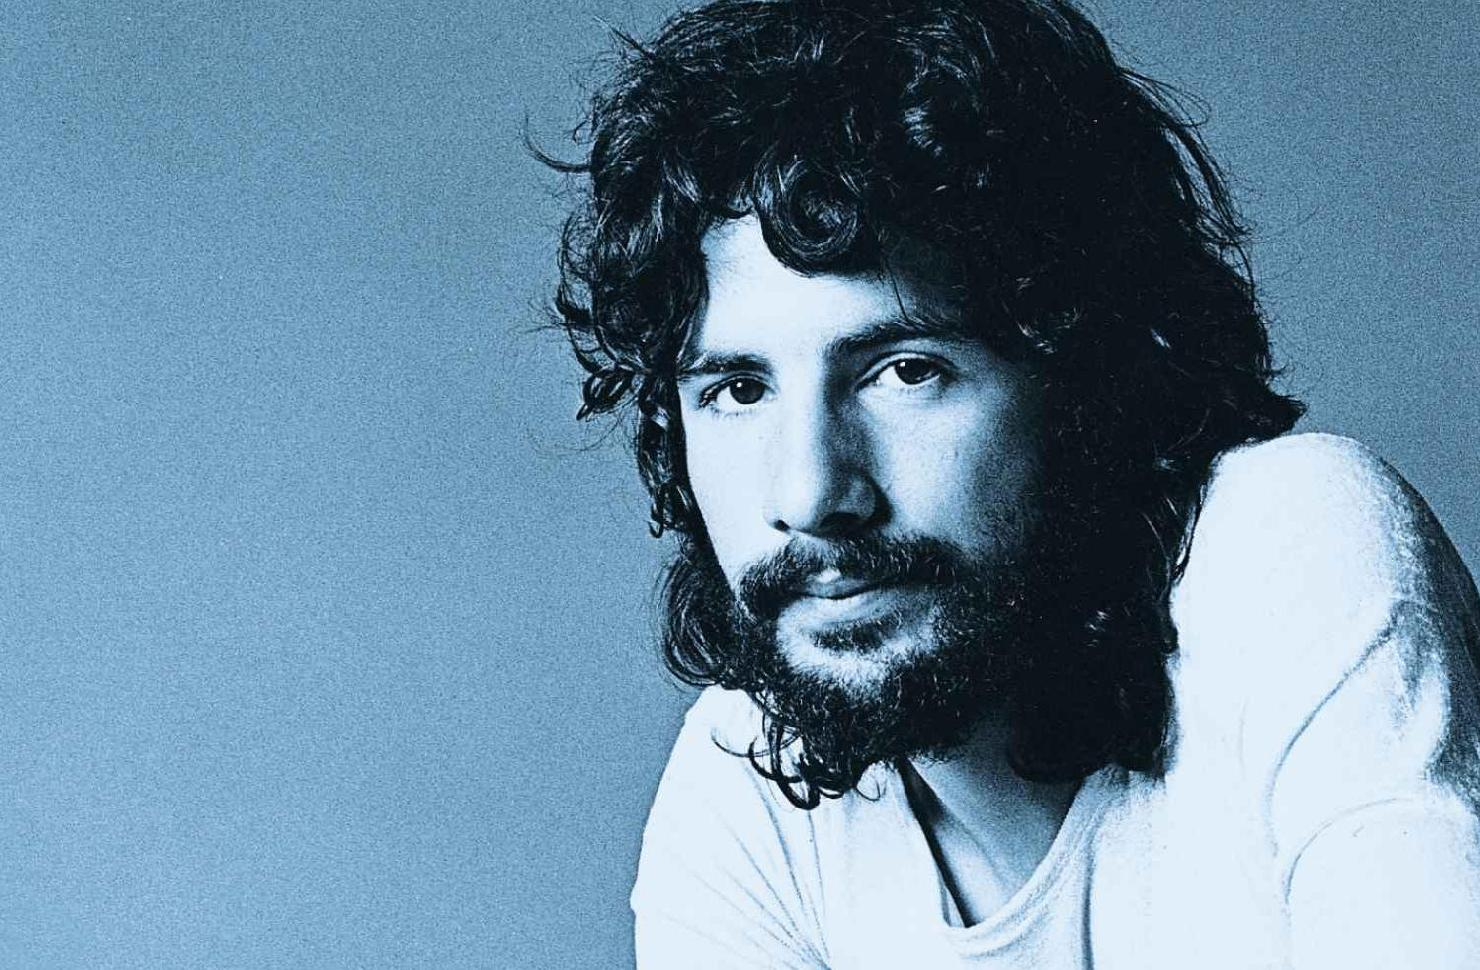 Father and Son Cat Stevens Testo e Accordi Chords per Chitarra